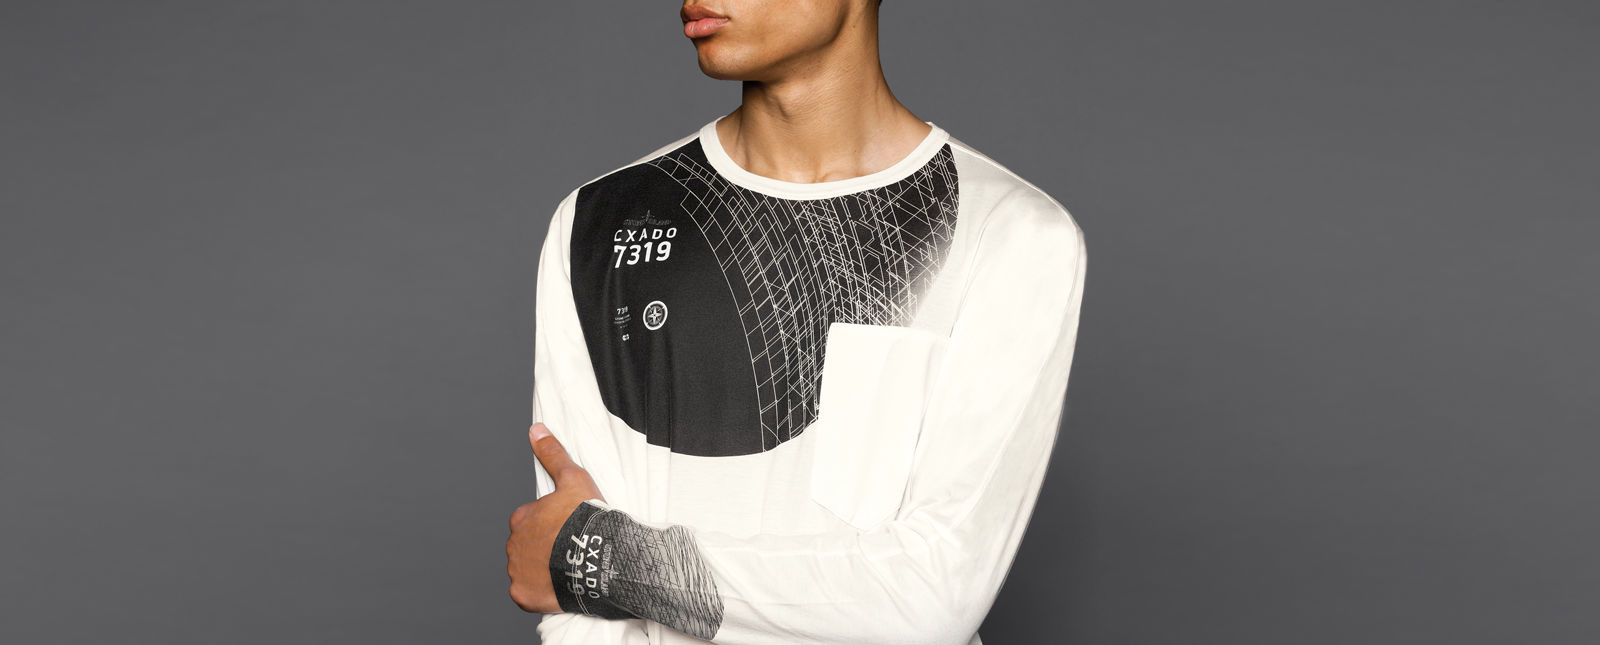 "Model wearing a  white long-sleeved T-shirt with black  inserts at the chest and sleeve cuffs featuring a pattern of white lines, logos, and ""CXADO 7319\"""